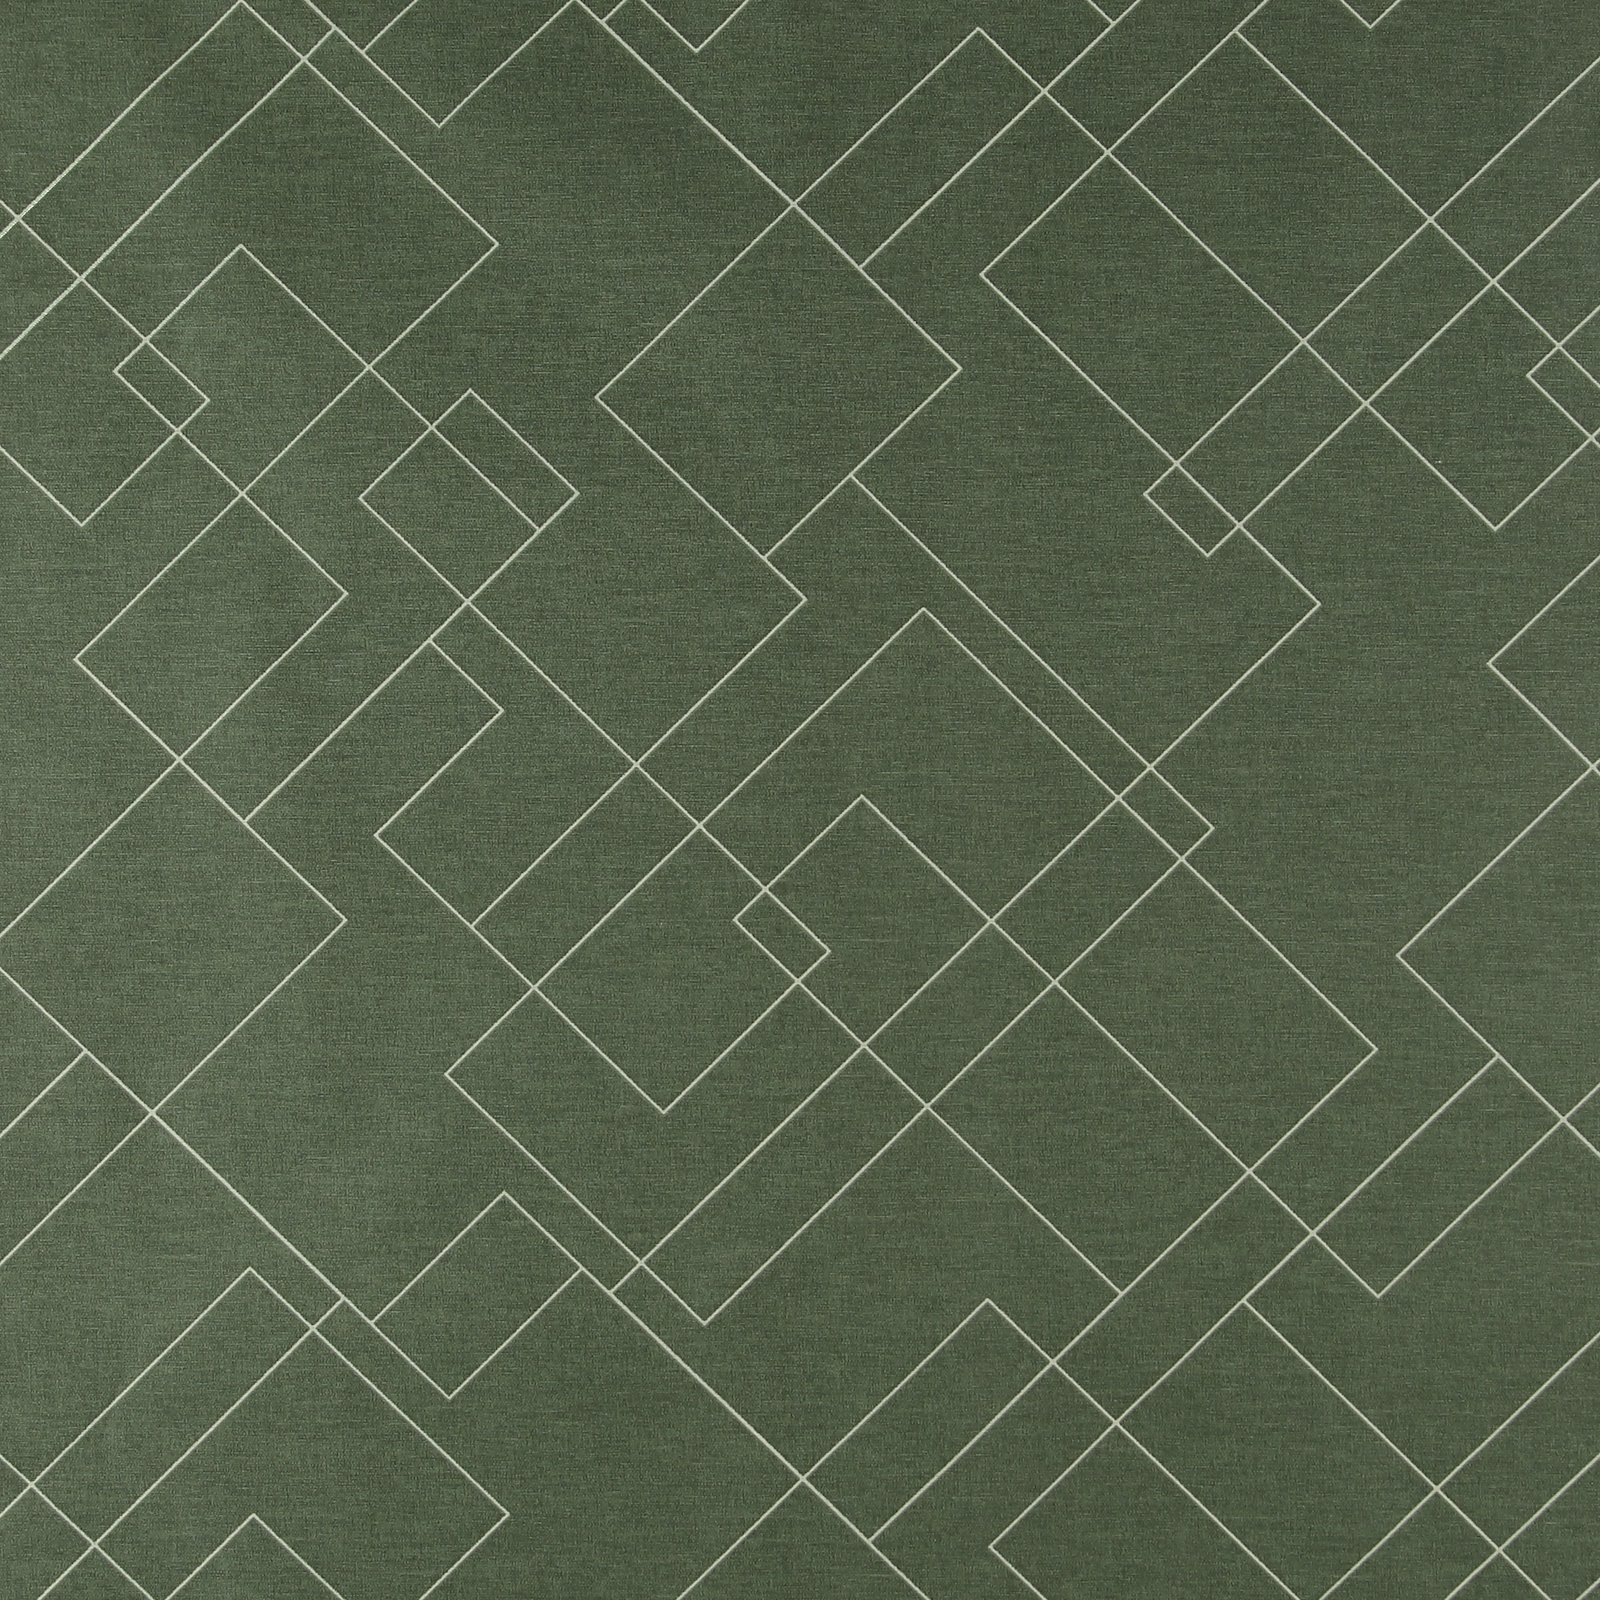 Woven oilcloth sage w graphic pattern 872292_pack_sp